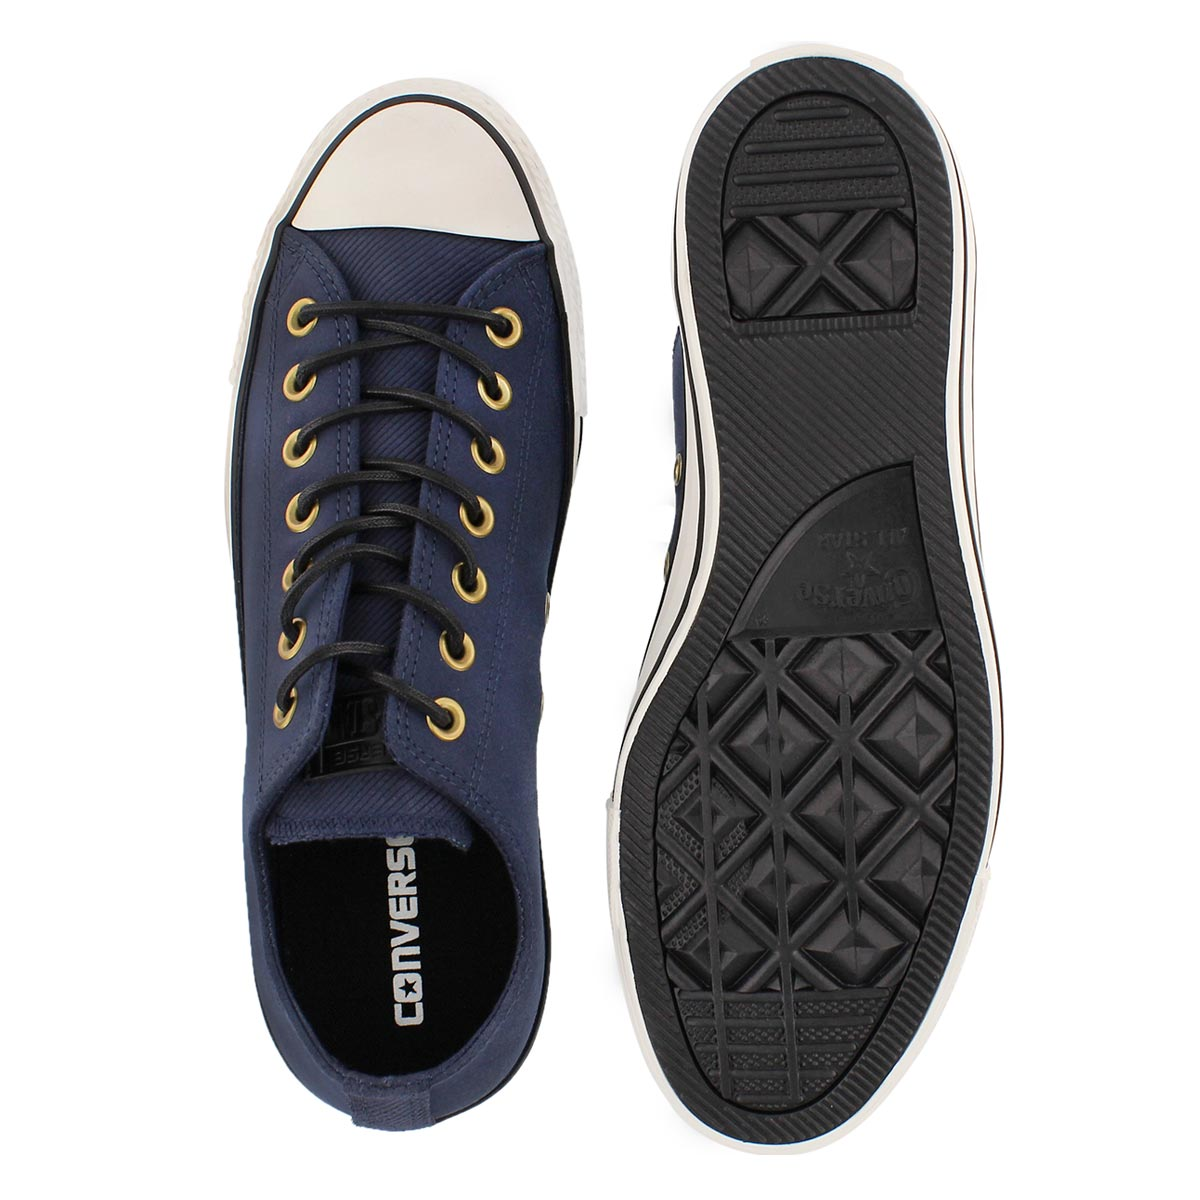 Mns CT A/S Leather Ox obsidian sneaker